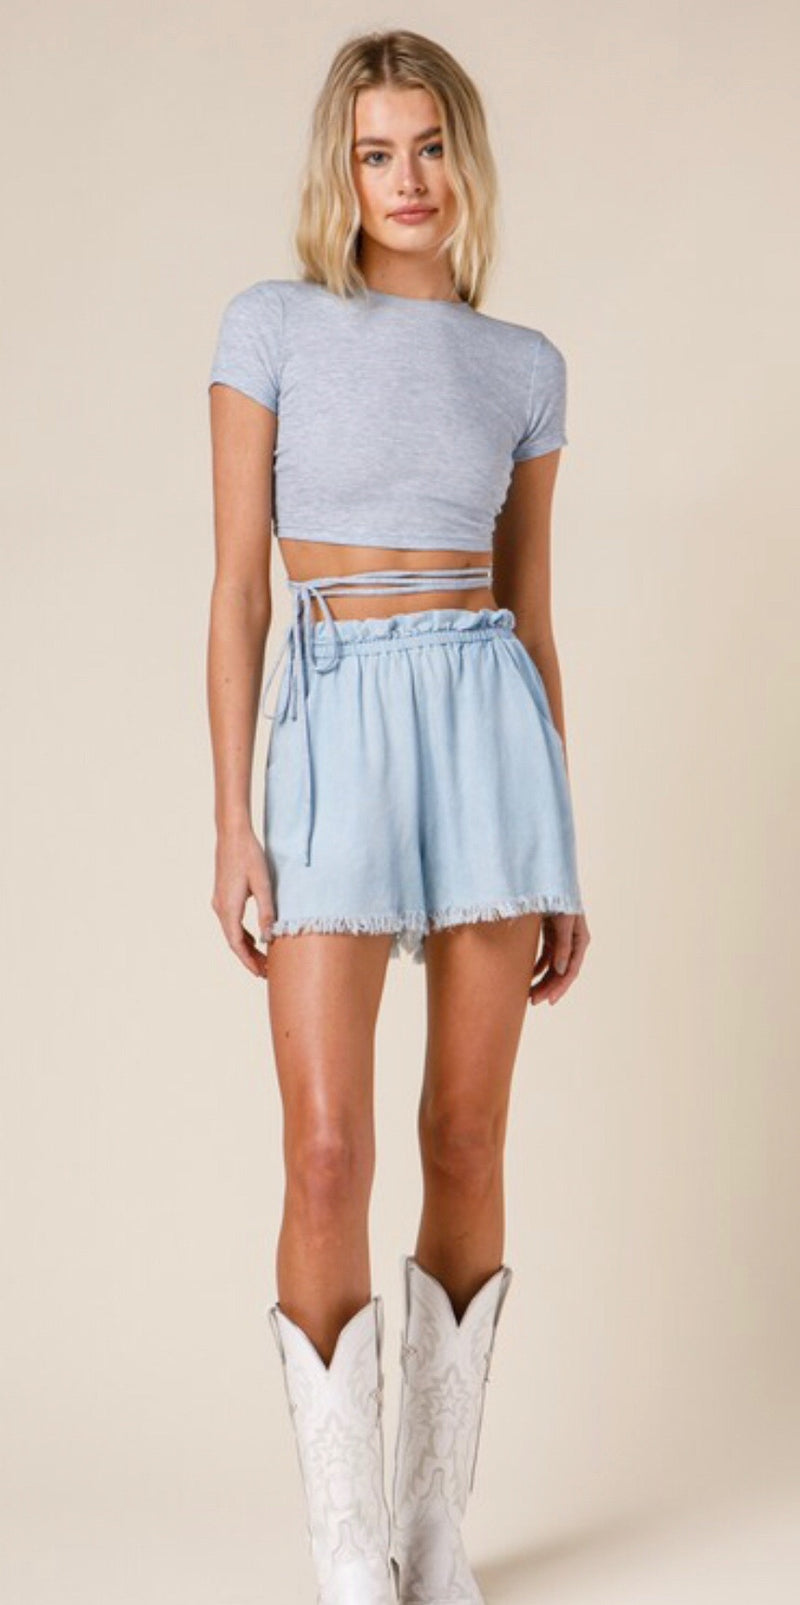 SHORT SLEEVE SPAGHETTI STRAP-AROUND CROP TOP - CLOUDY BLUE